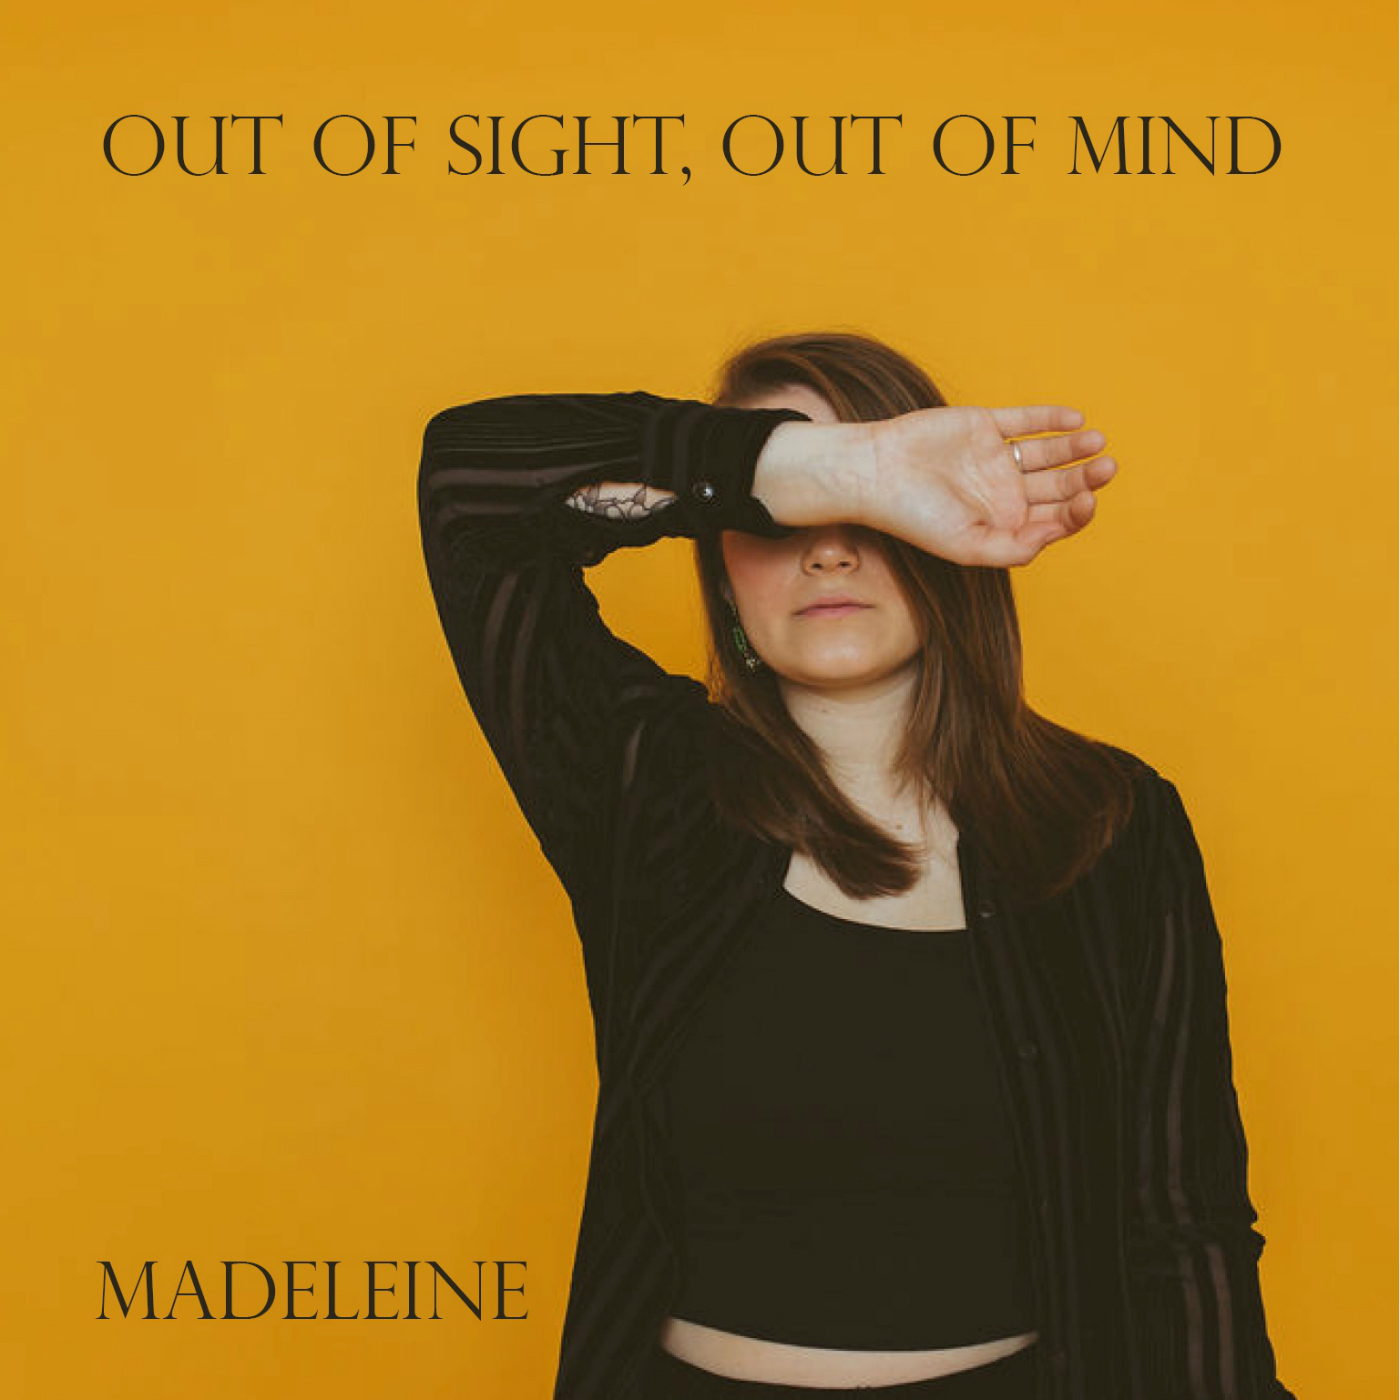 Madeleine - Single: Out Of Sight, Out Of MindRelease date: July 5, 2019